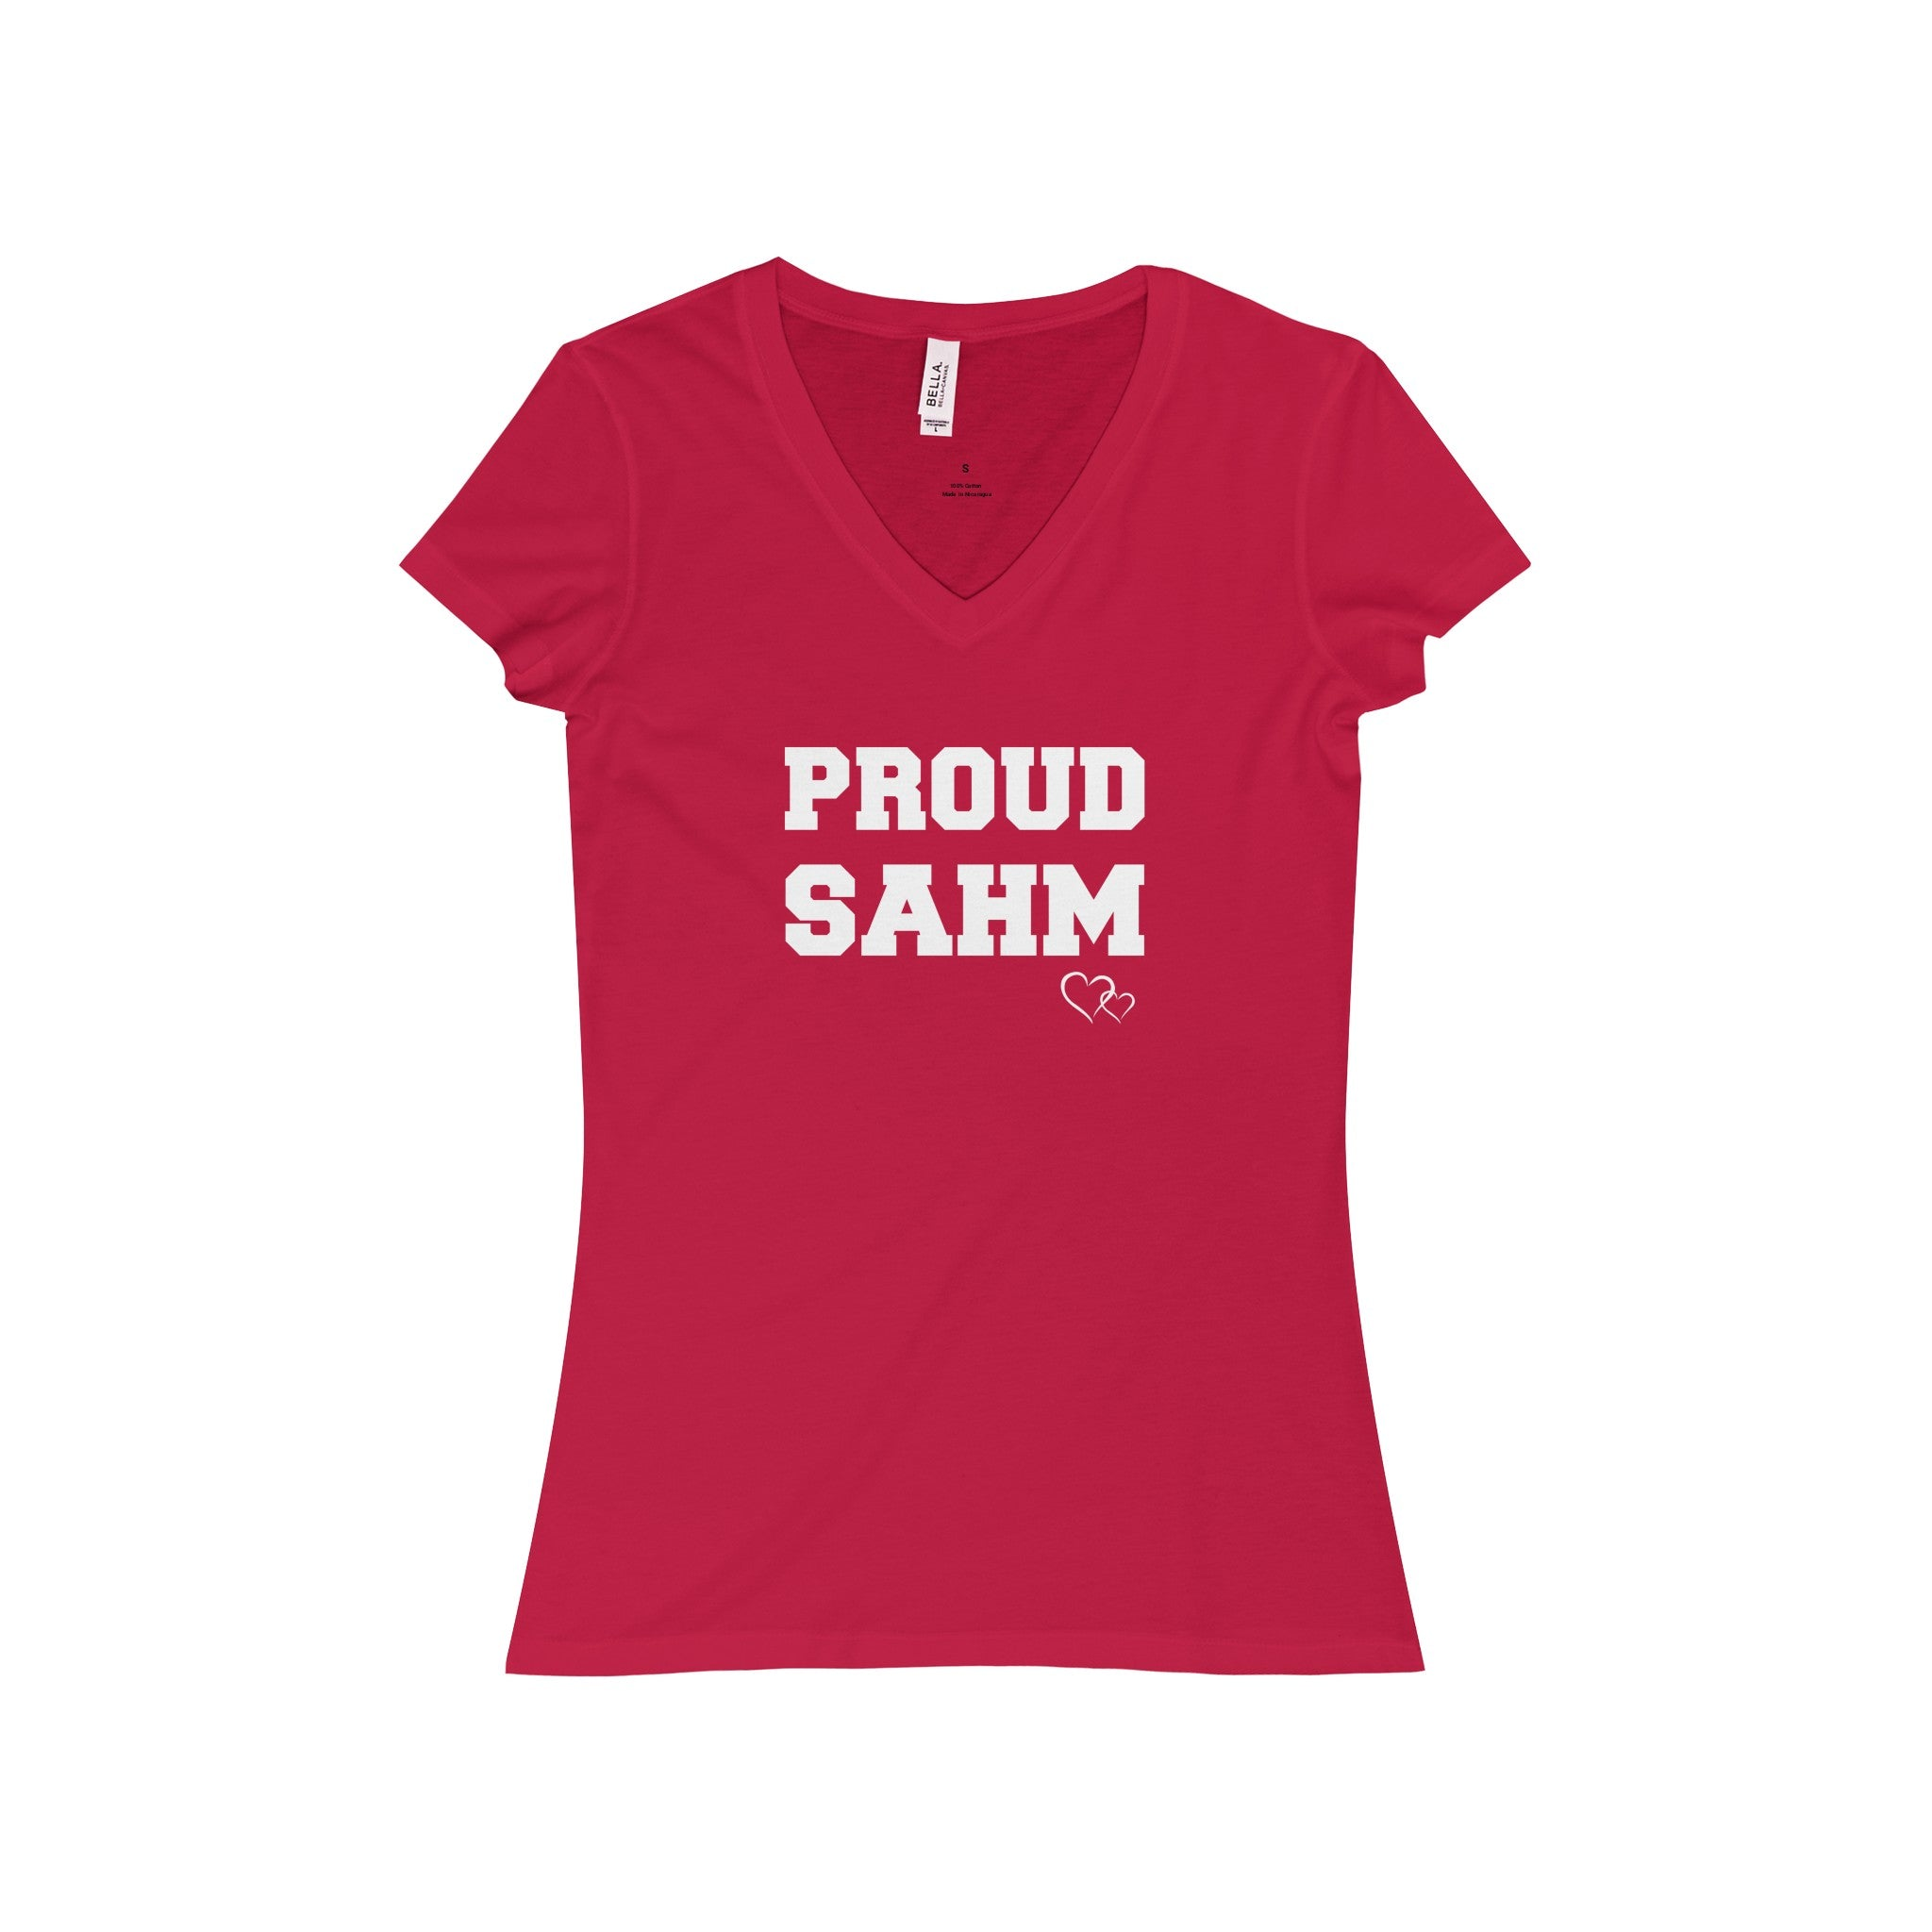 PROUD SAHM - Short Sleeve V